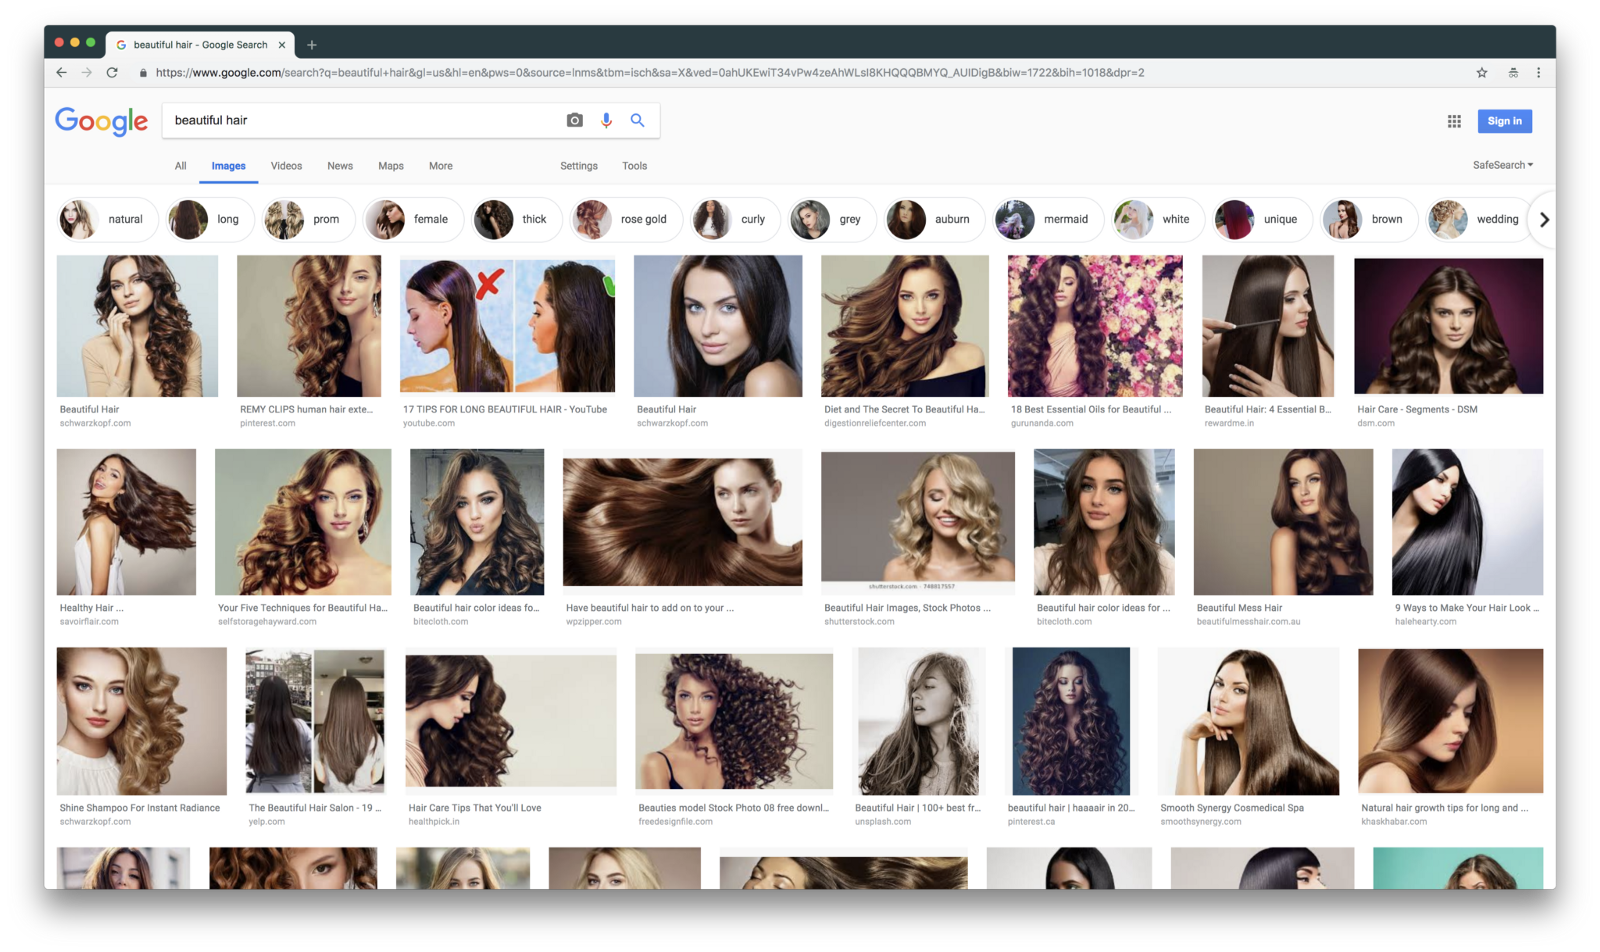 Google SERP for beautiful hair